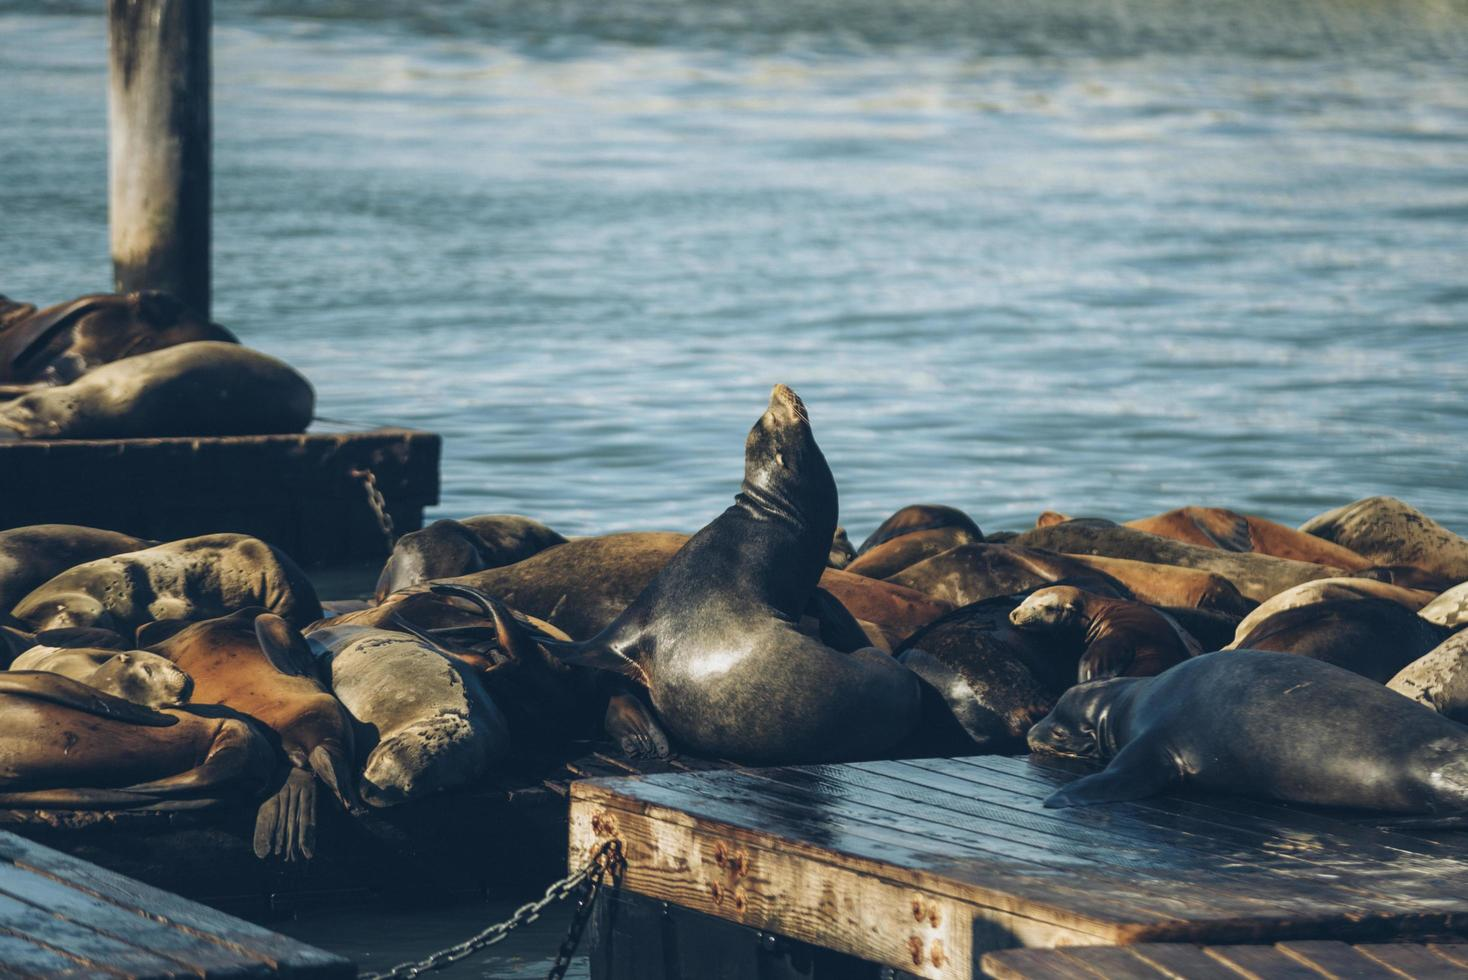 Group of sealions photo